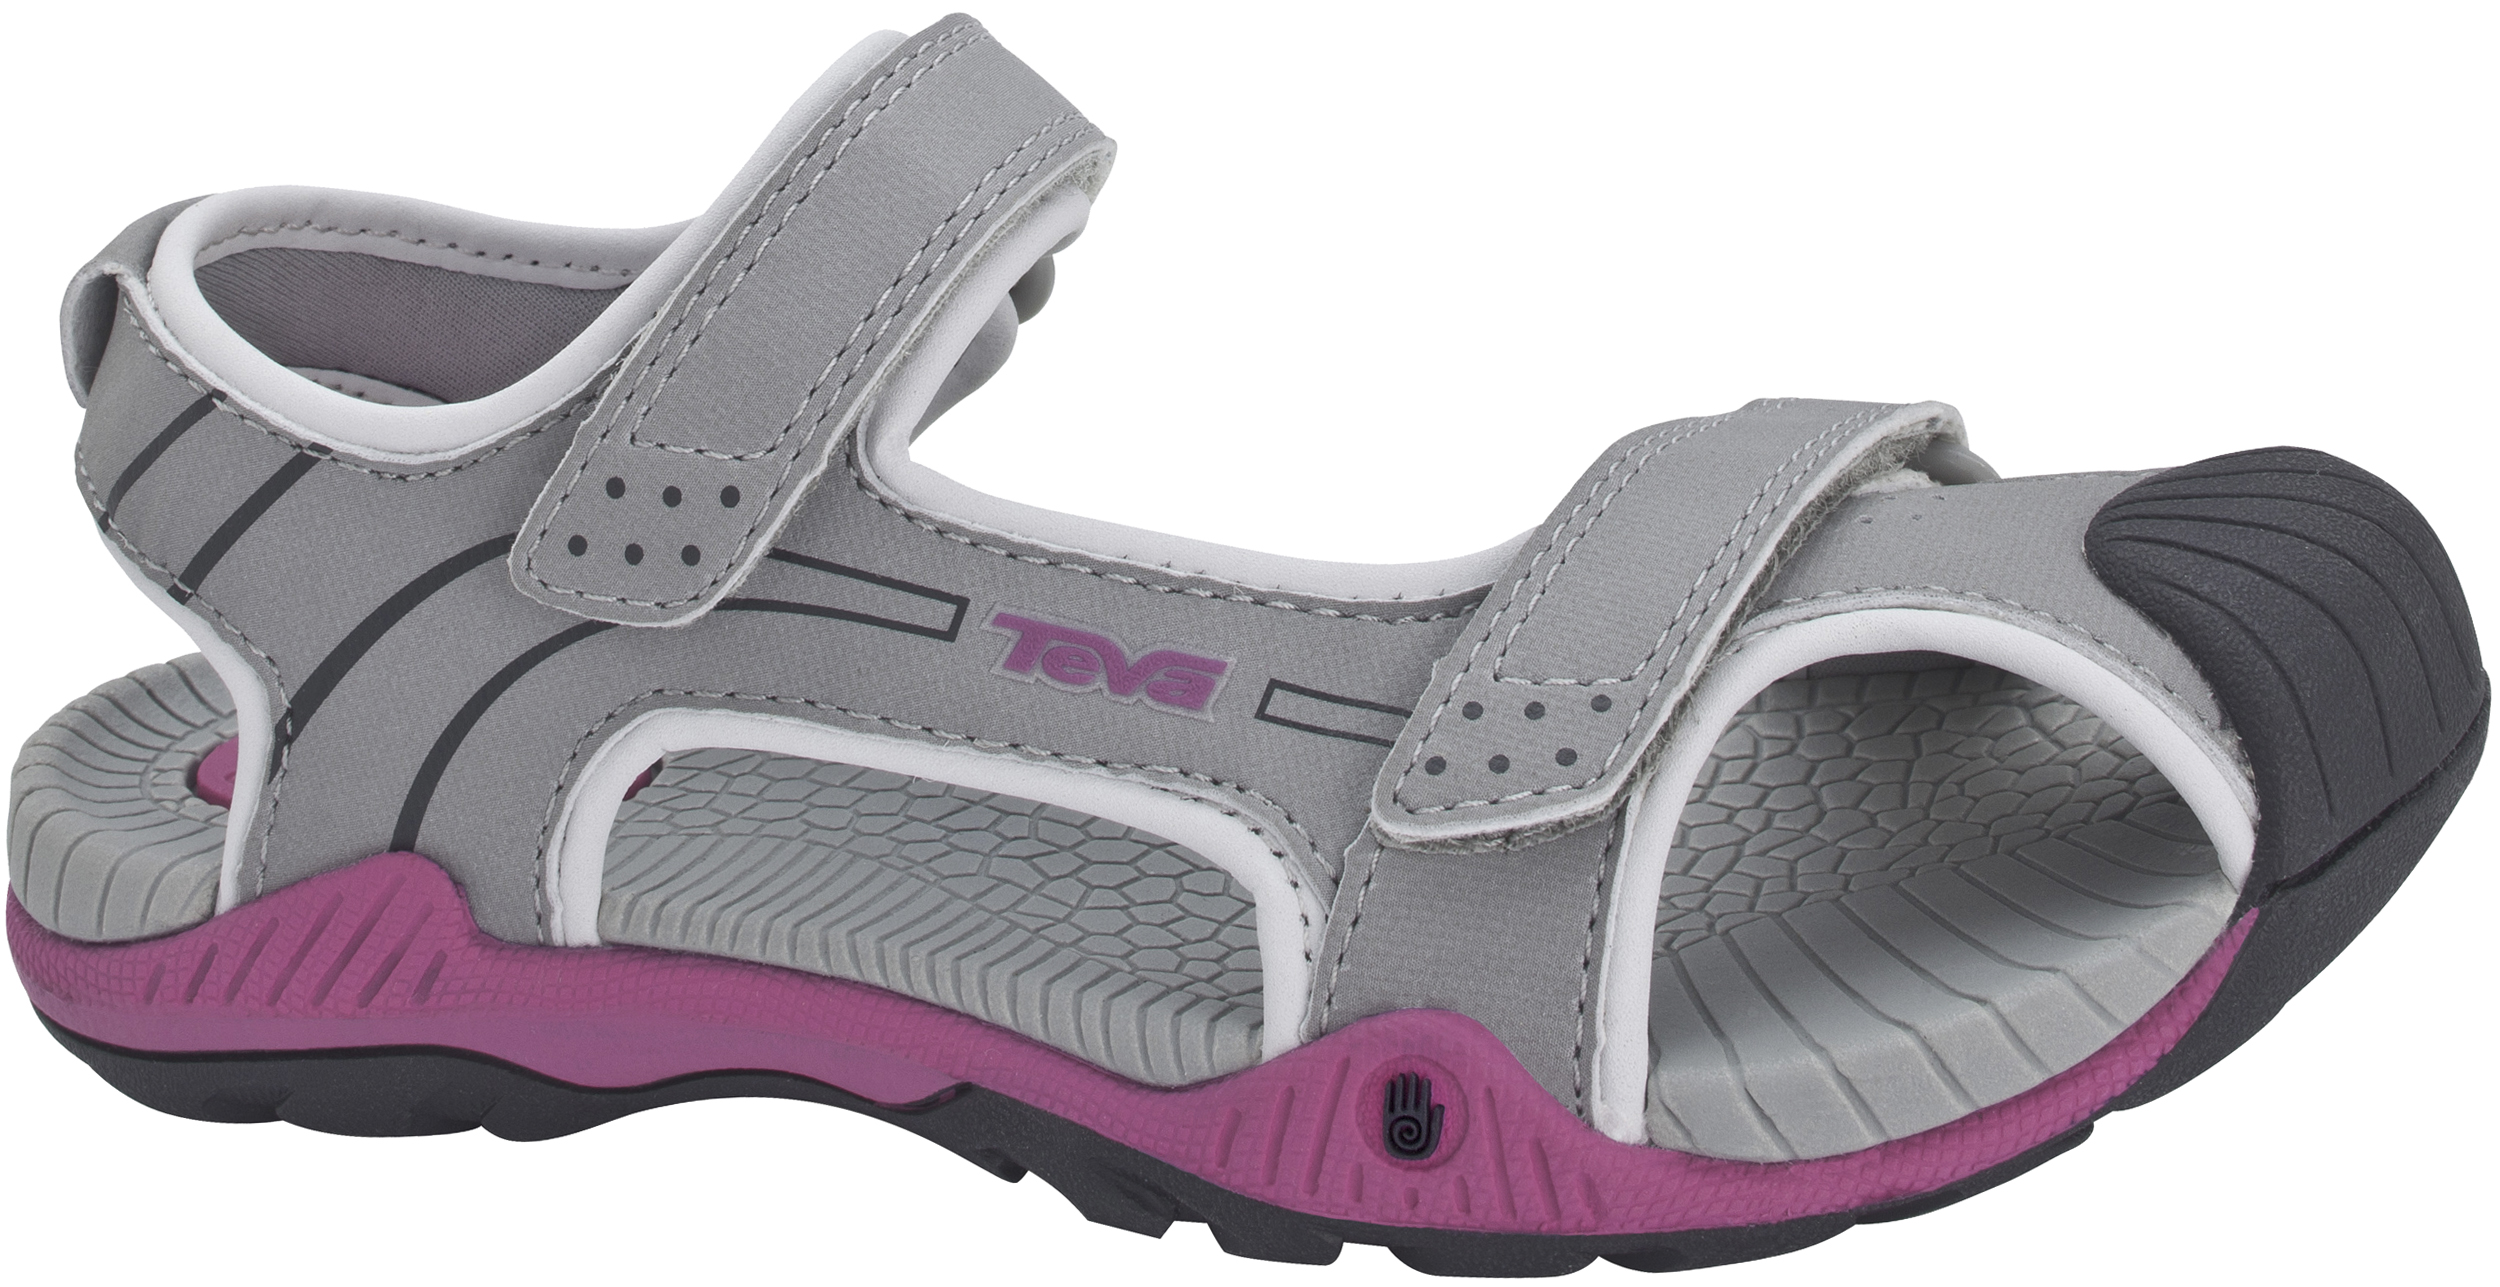 f616479f65a5b0 Teva Toachi 2 Sandals - Children to Youths